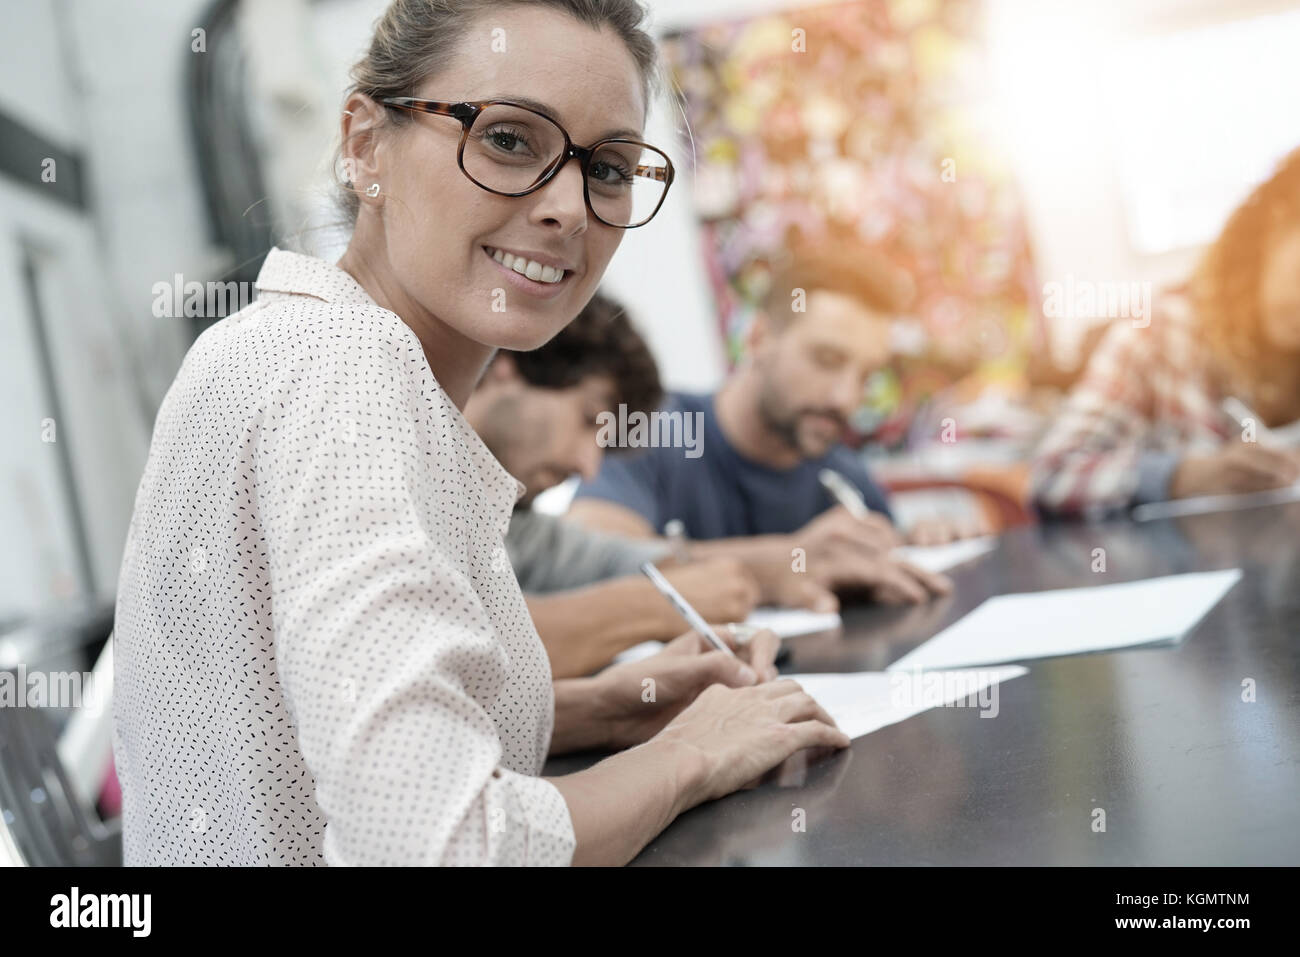 University students filling in application form - Stock Image